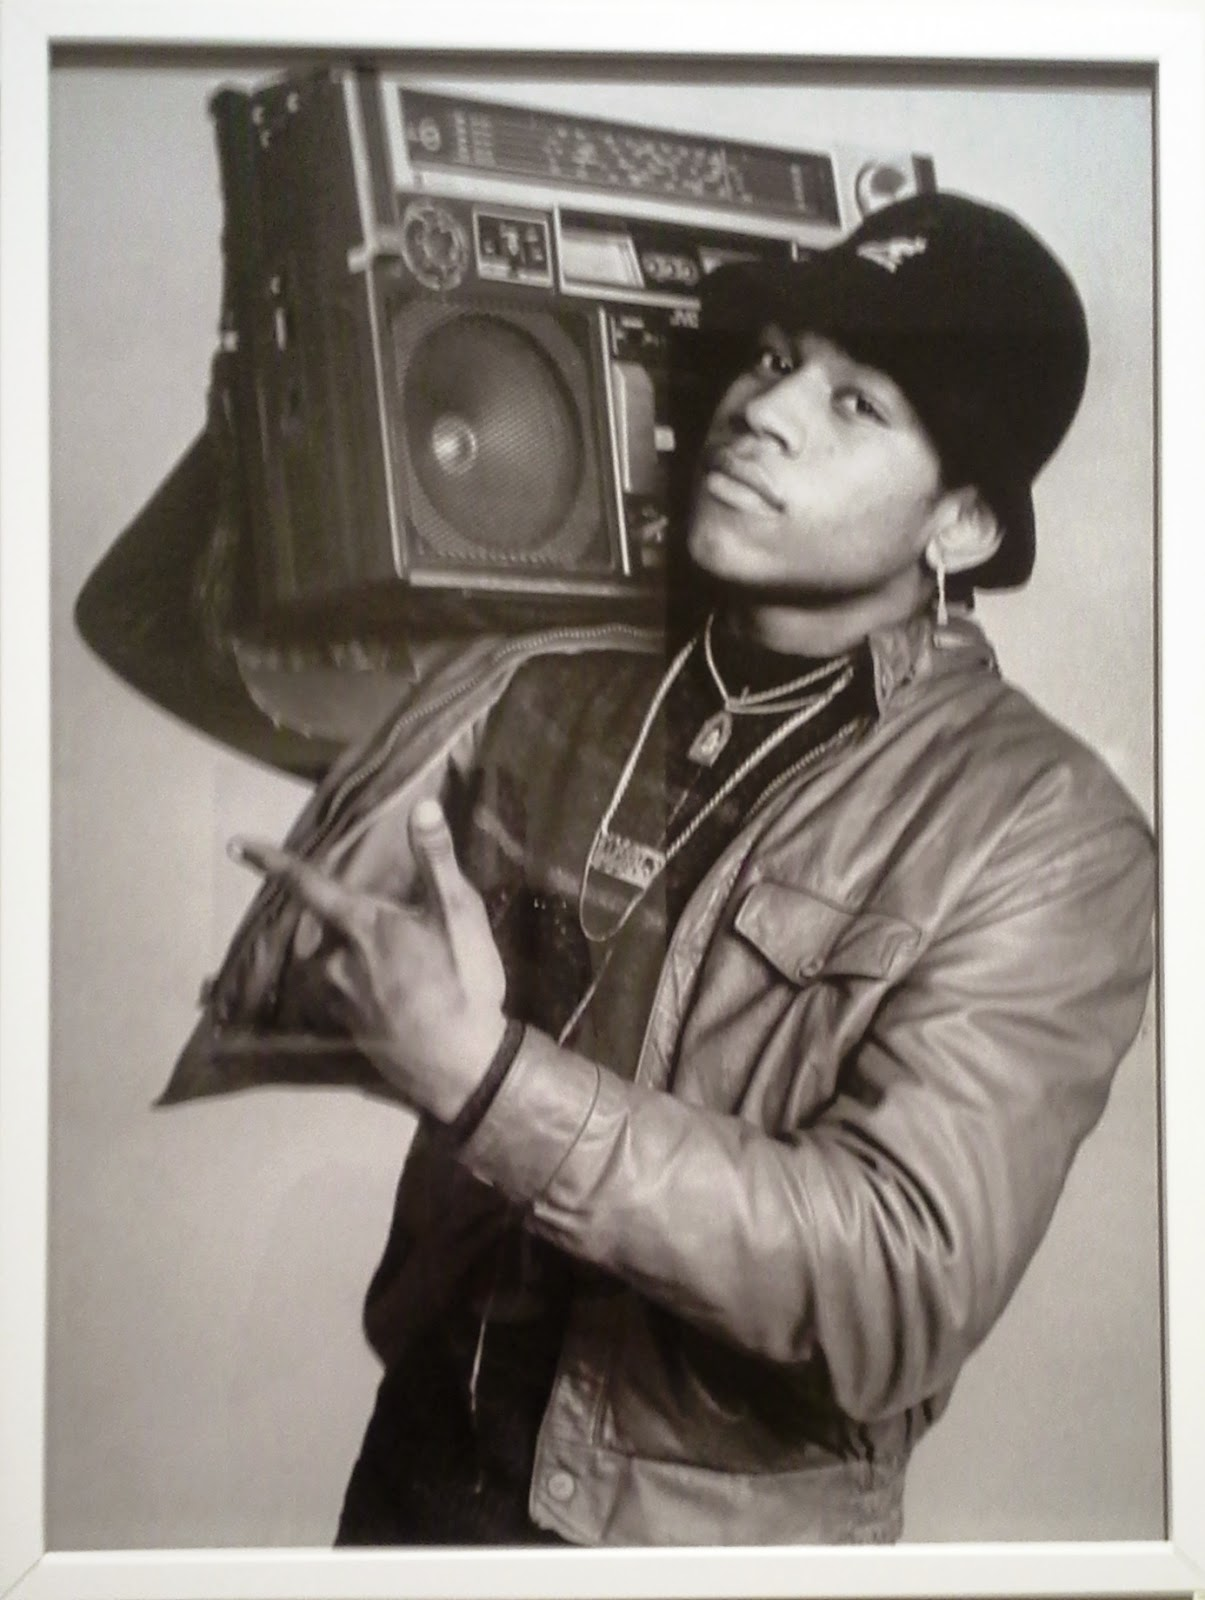 Scotiabank CONTACT Photography Festival: 40 Years of Hip Hop at The Gladstone Hotel, Toronto Culture, Art, Melanie.Ps Blogger, The Purple Scarf